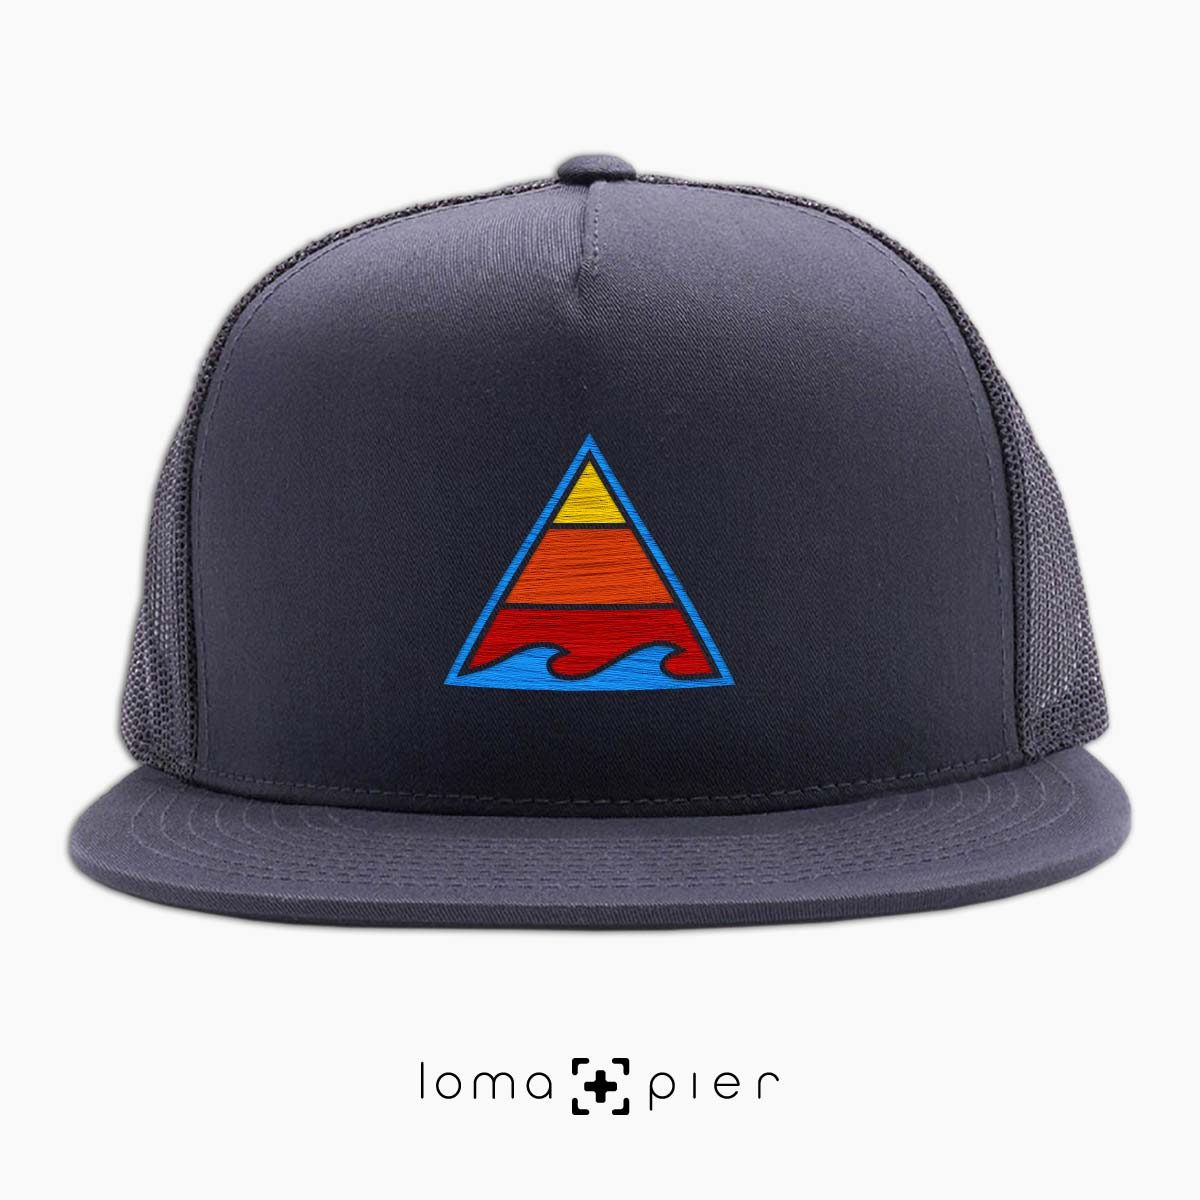 RIDE THAT WAVE beach netback hat in charcoal by loma+pier hat store